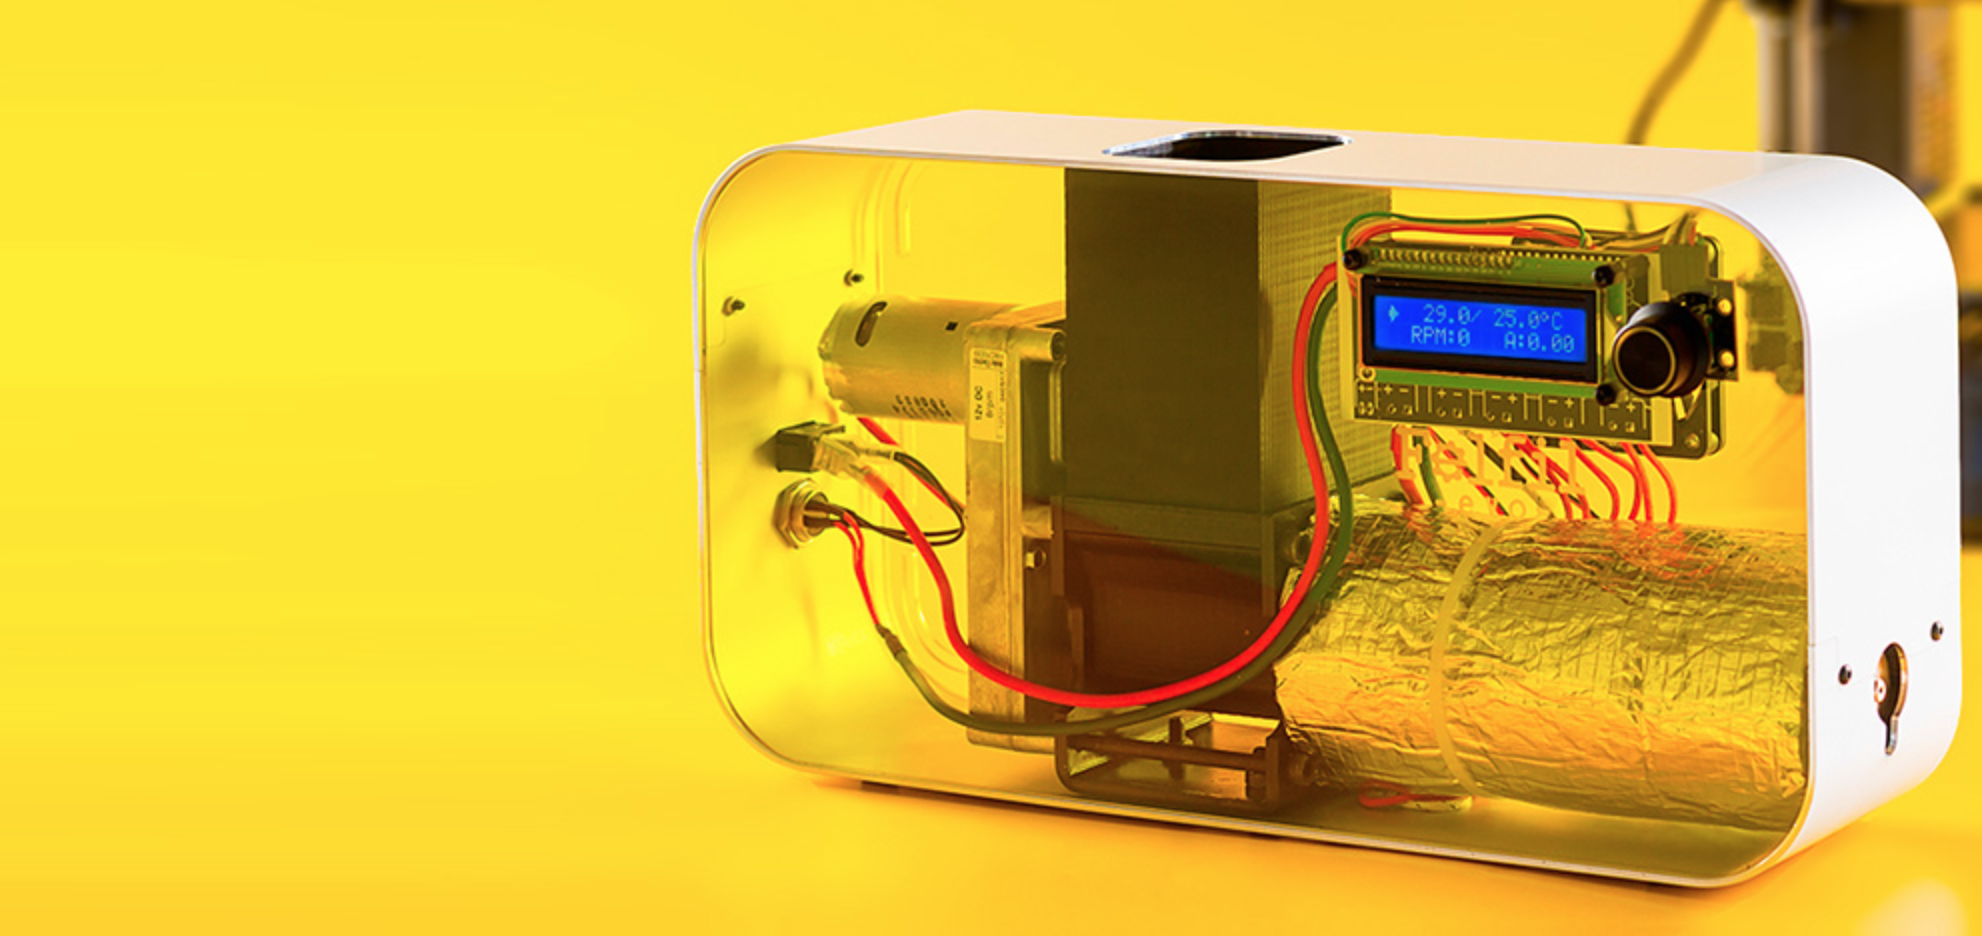 The Felfil Evo Allows Users to Make Their Own Filament From Plastic Pellets/Waste